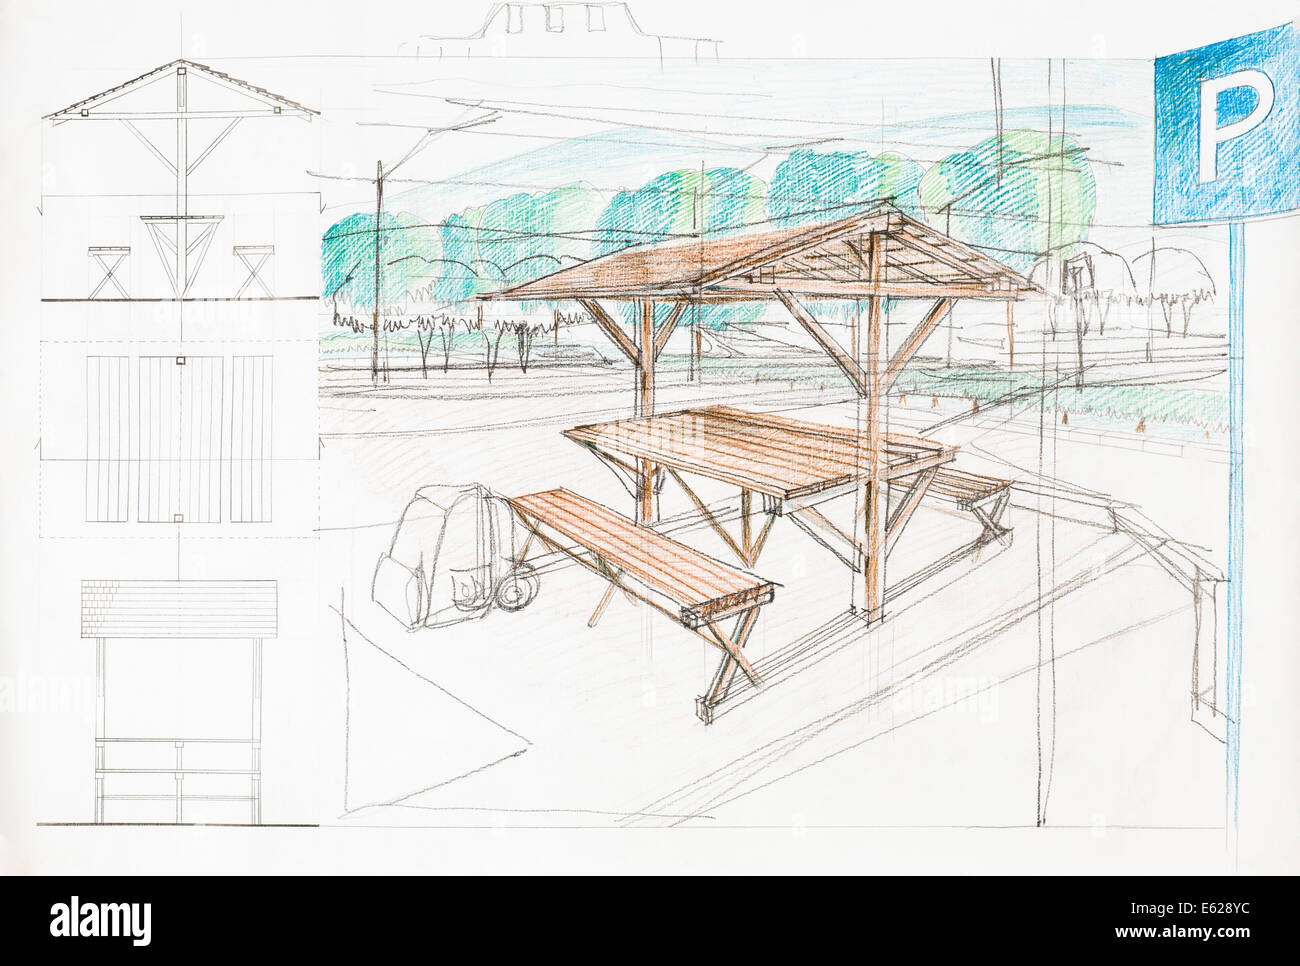 colorful architectural sketch of car park and rest place, drawn by ...